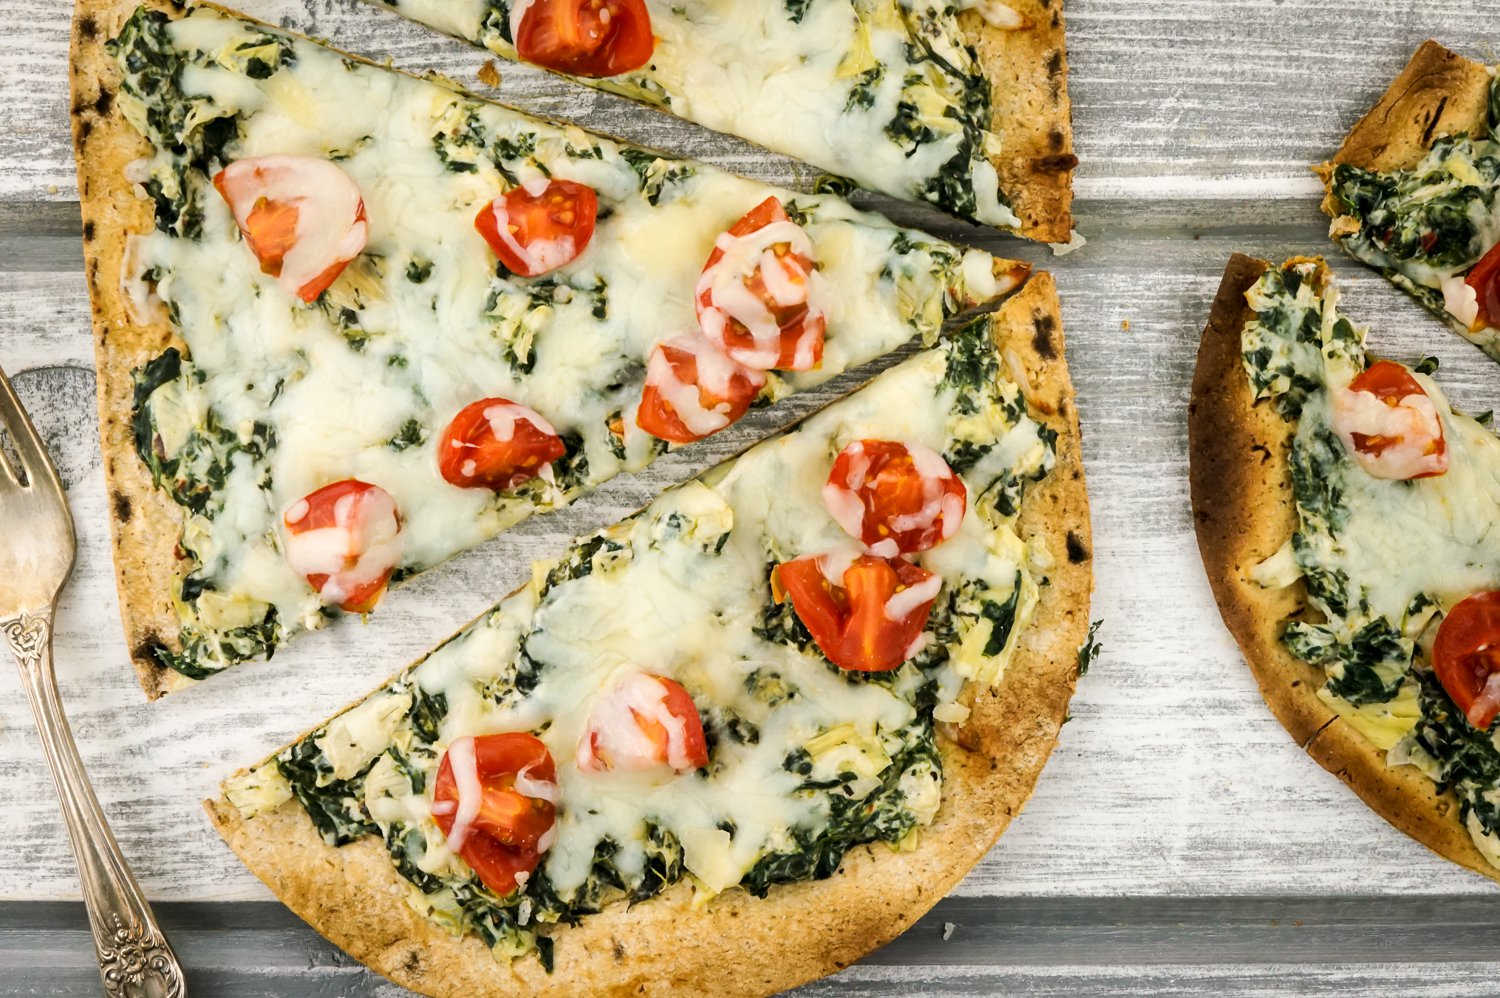 Weight Watchers Spinach and Artichoke Pizza for a healthy football appetizer.